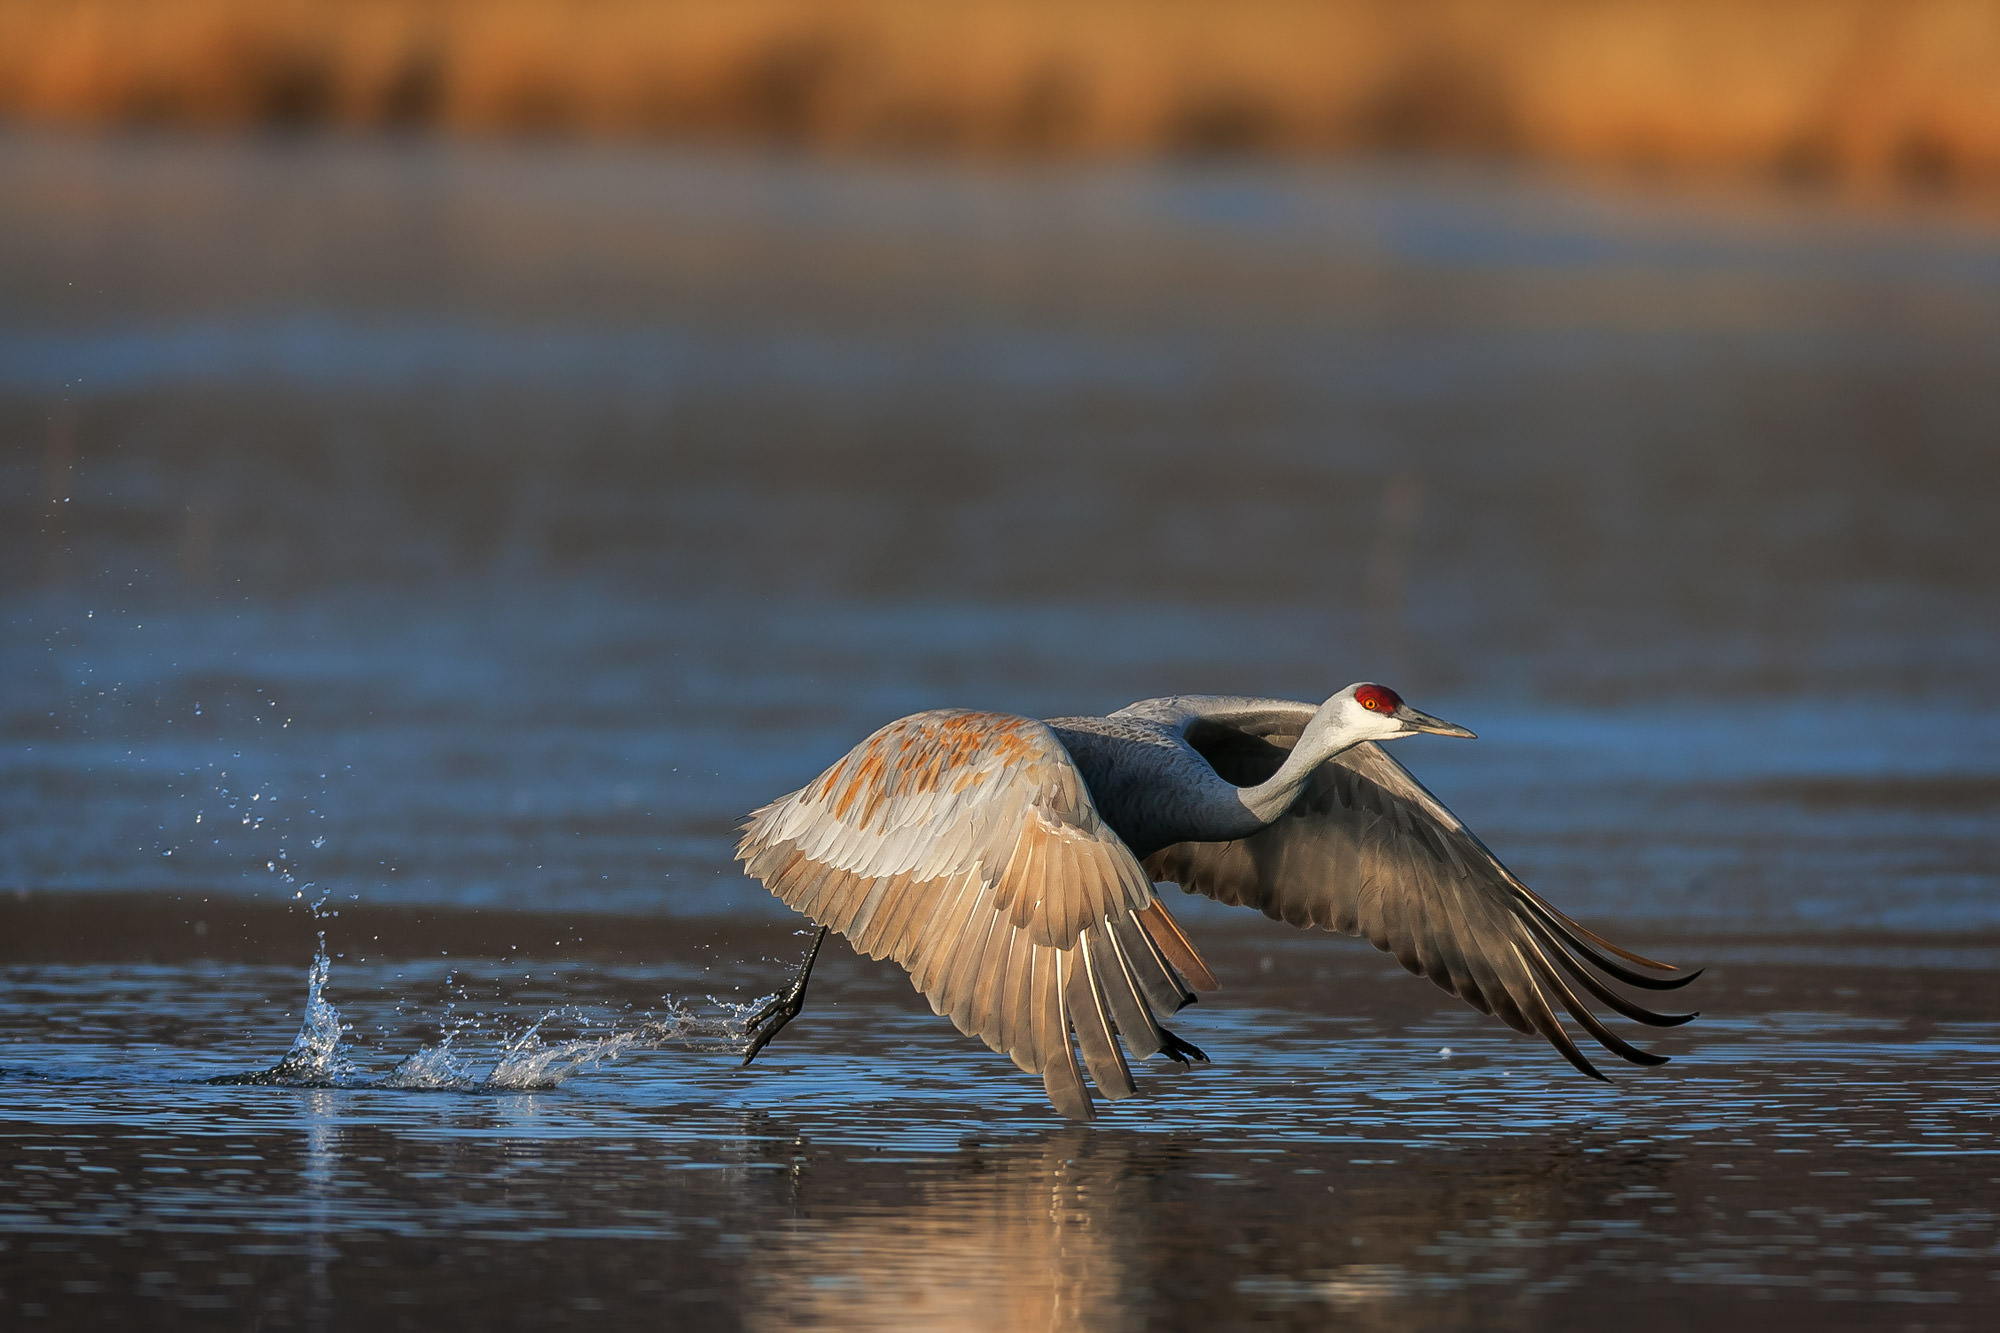 Sandhill Crane, New Mexico, Bosque del Apache, takeoff, limited edition, photograph, fine art, wildlife, photo